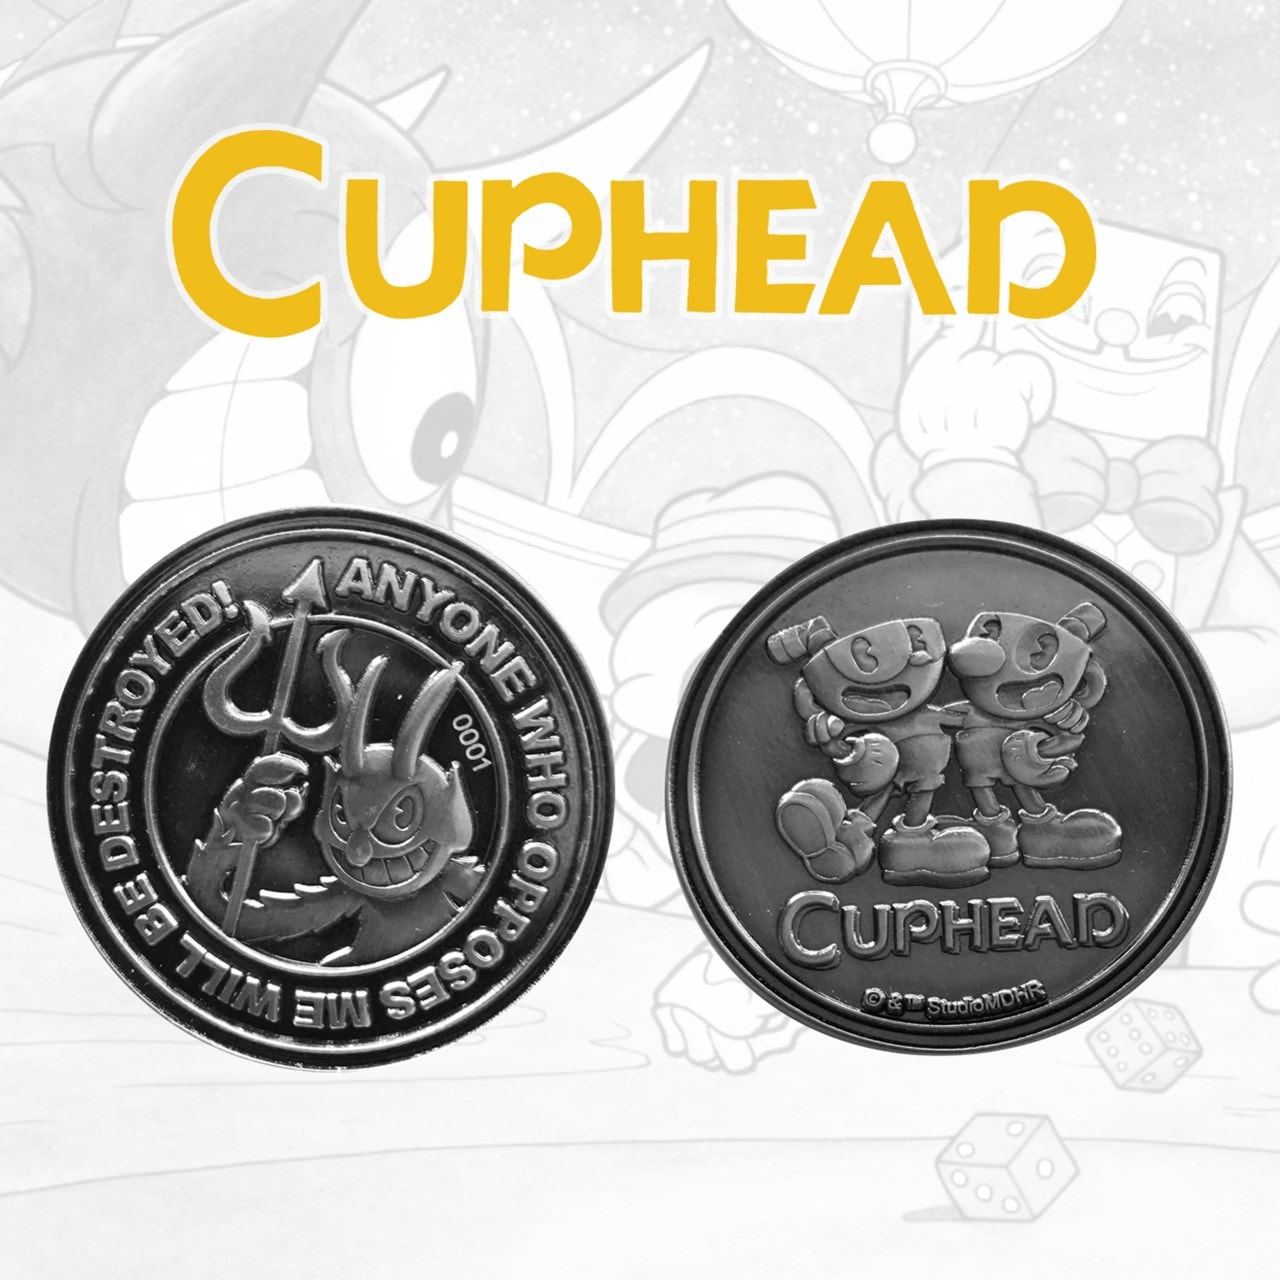 Cuphead: Limited Edition Coin - 3